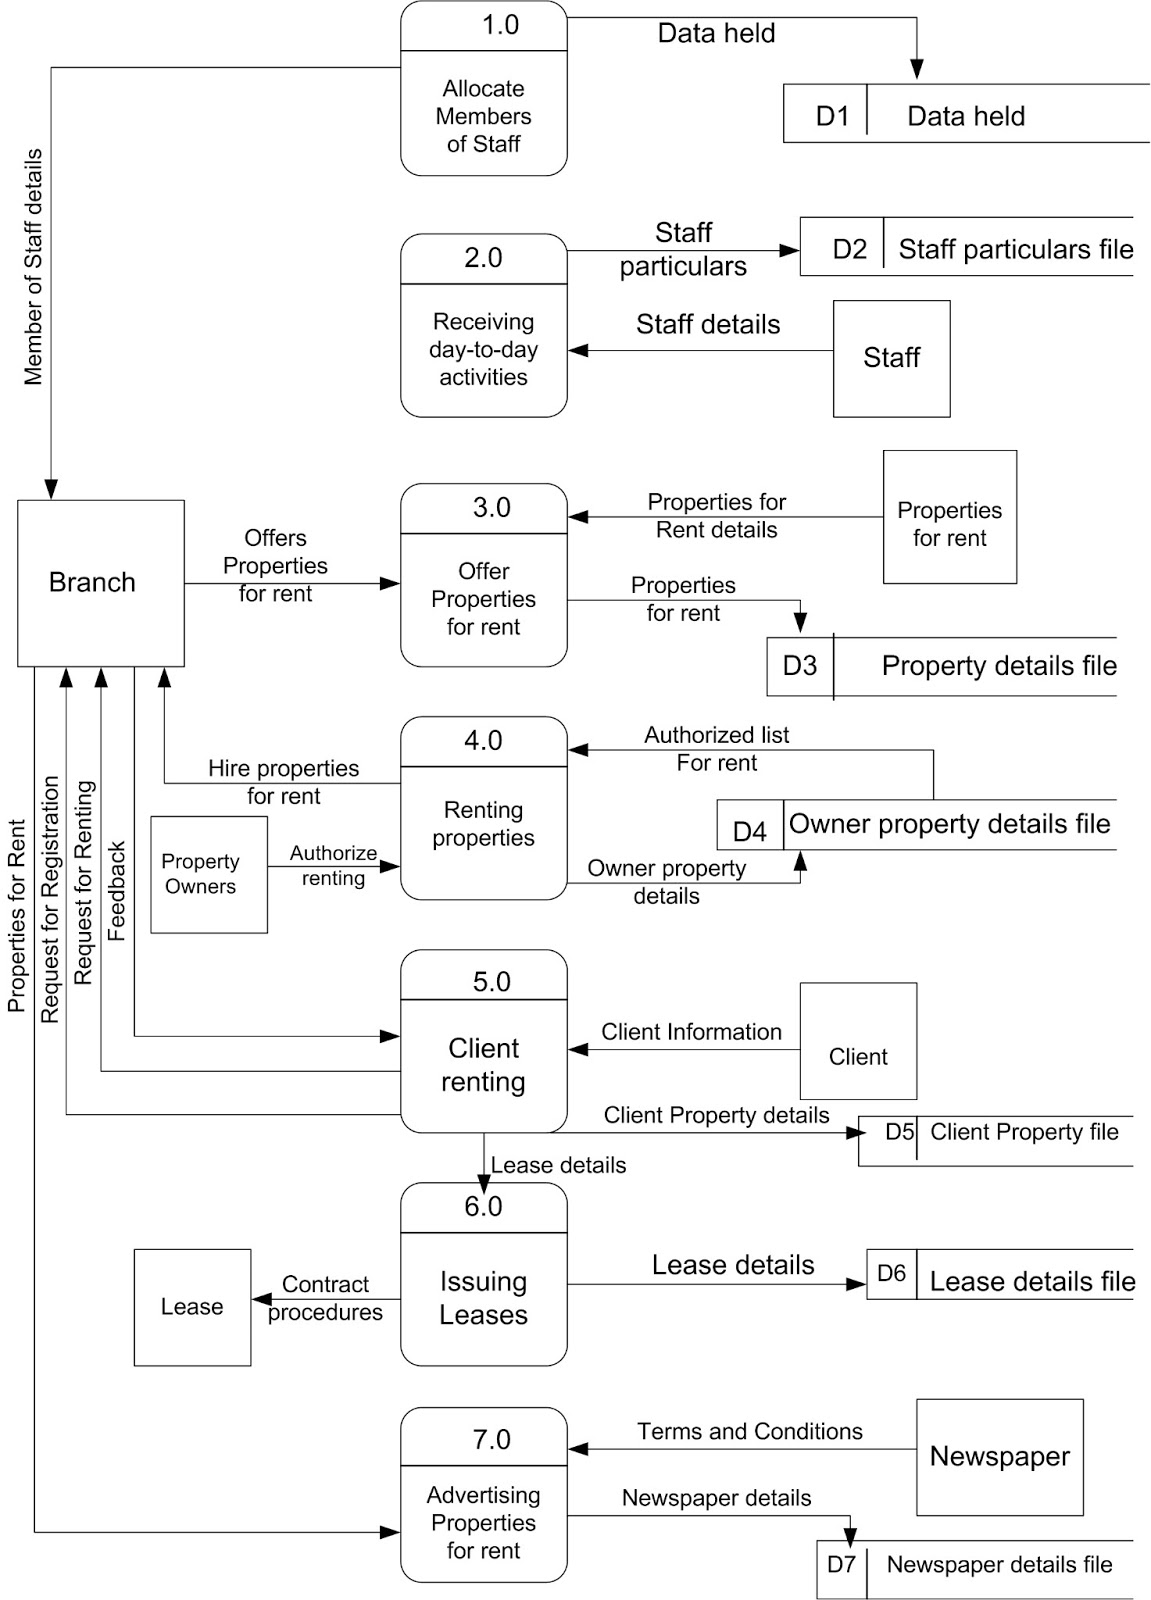 medium resolution of a level 0 data flow diagram dfd for proposed system for dreamhome case study